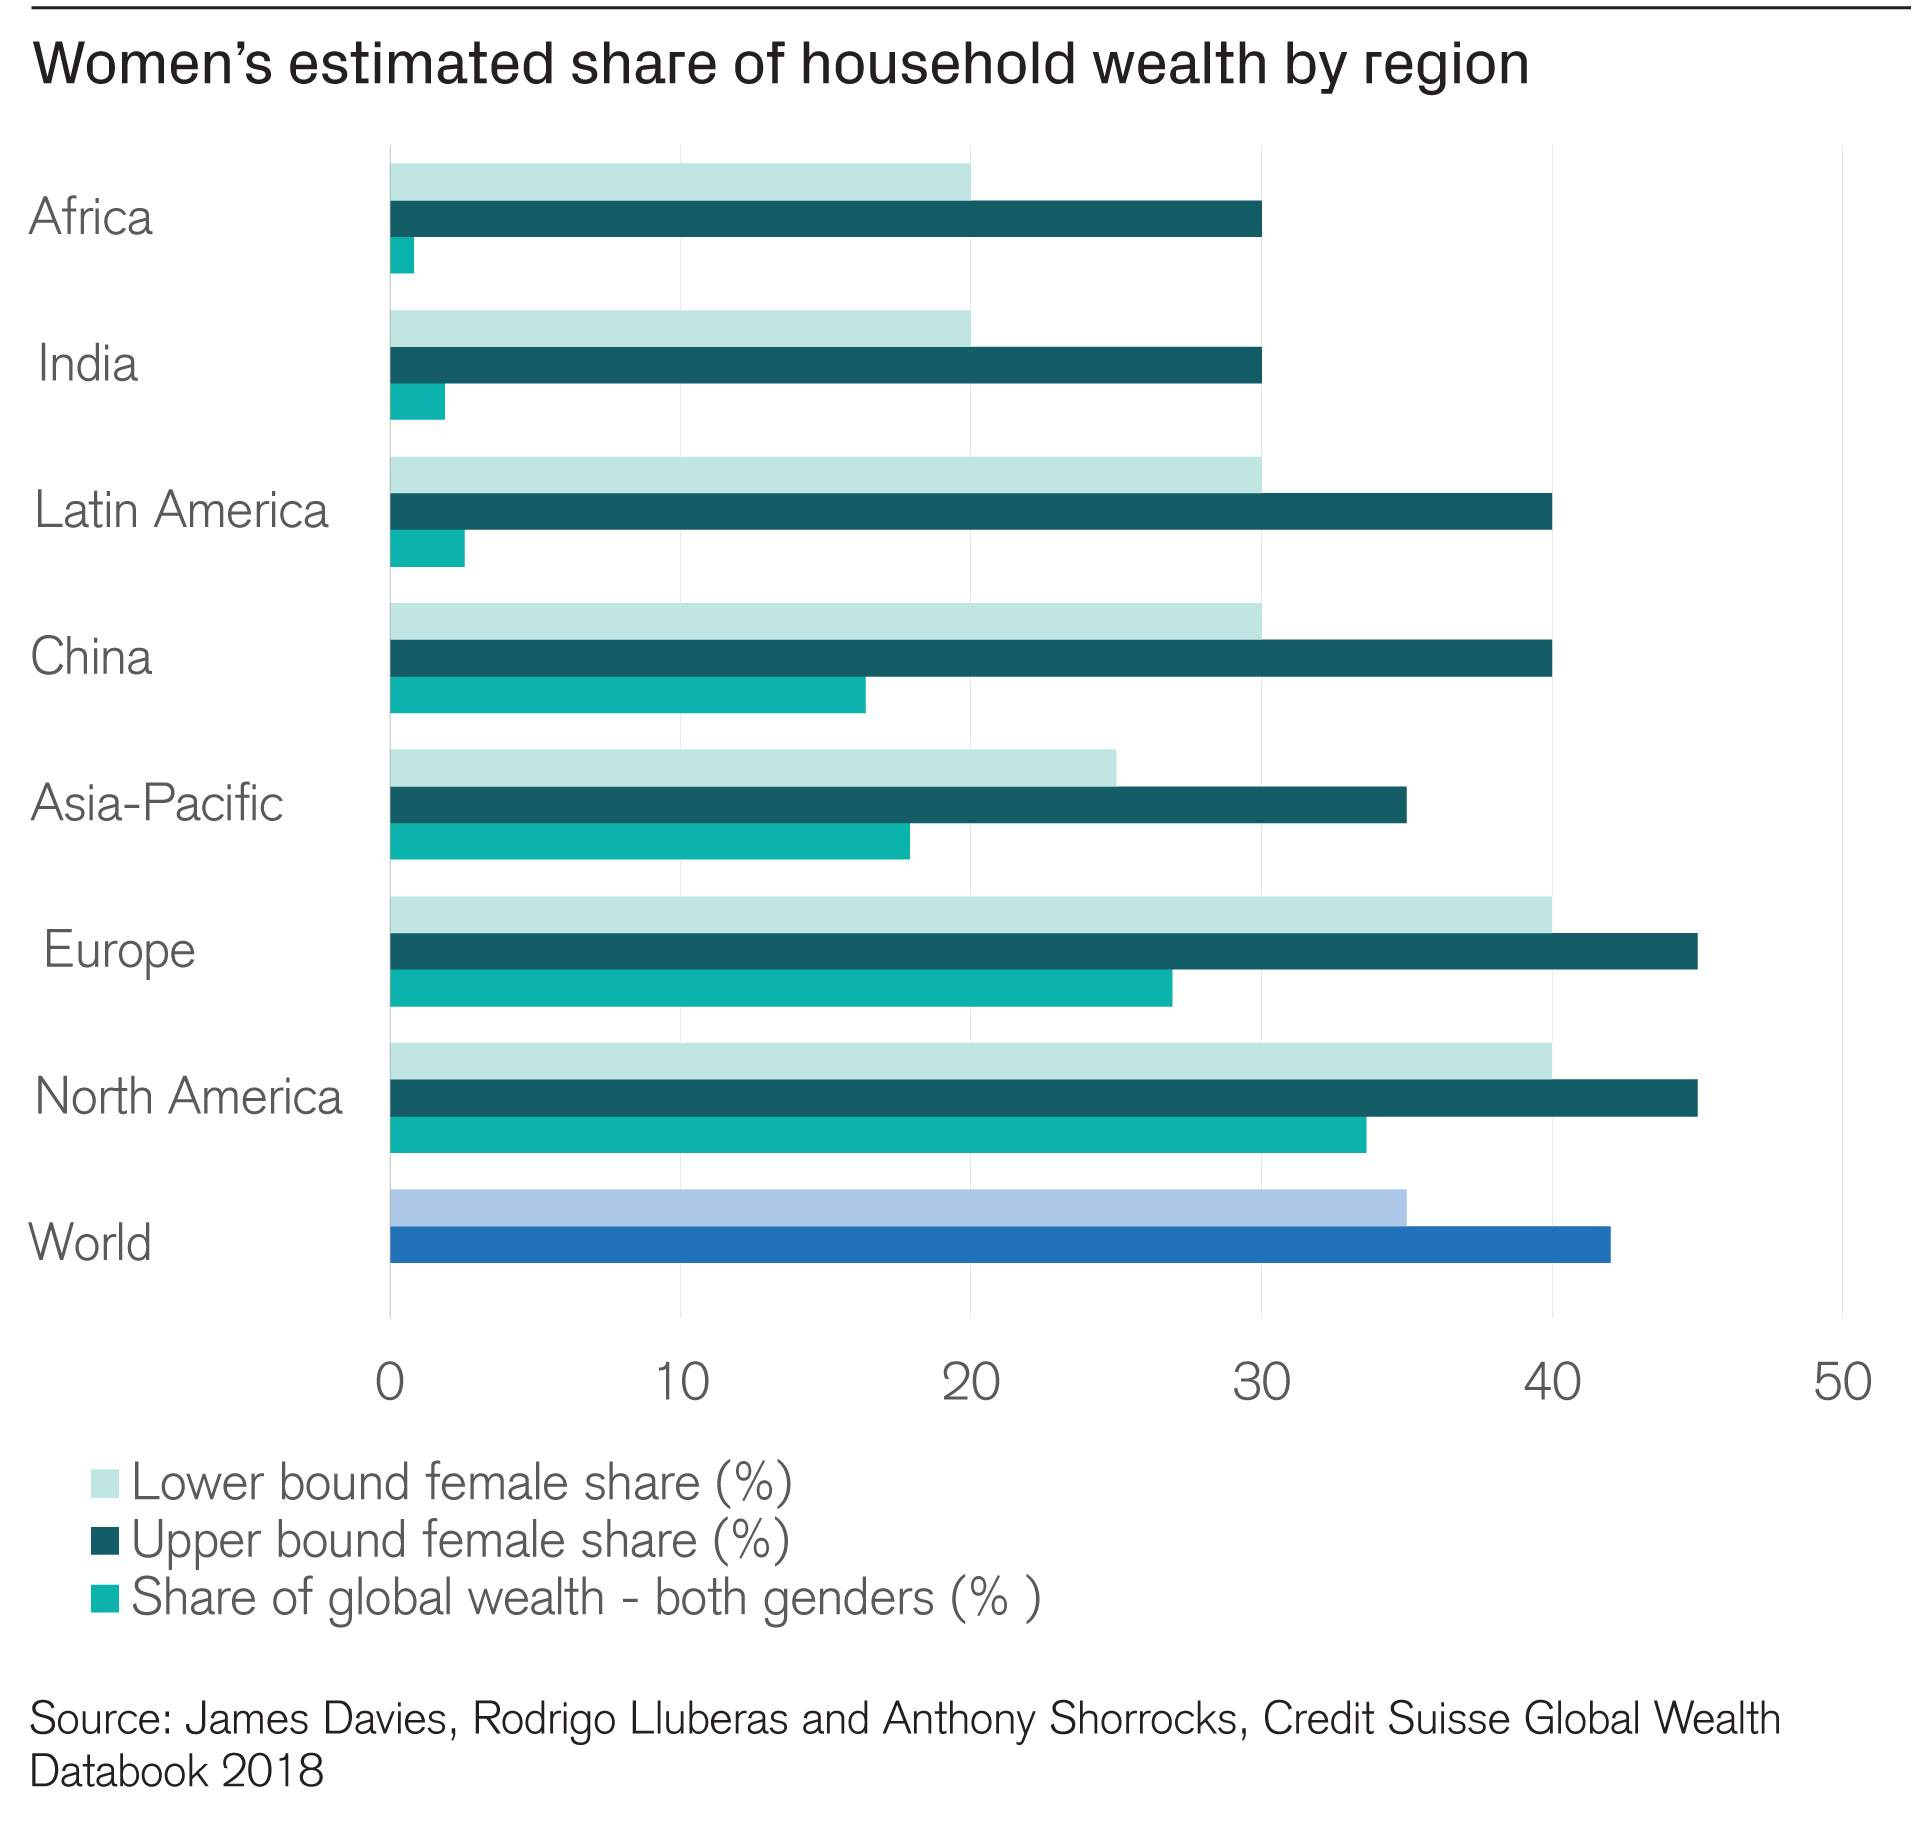 Women's estimated share of household wealth by region